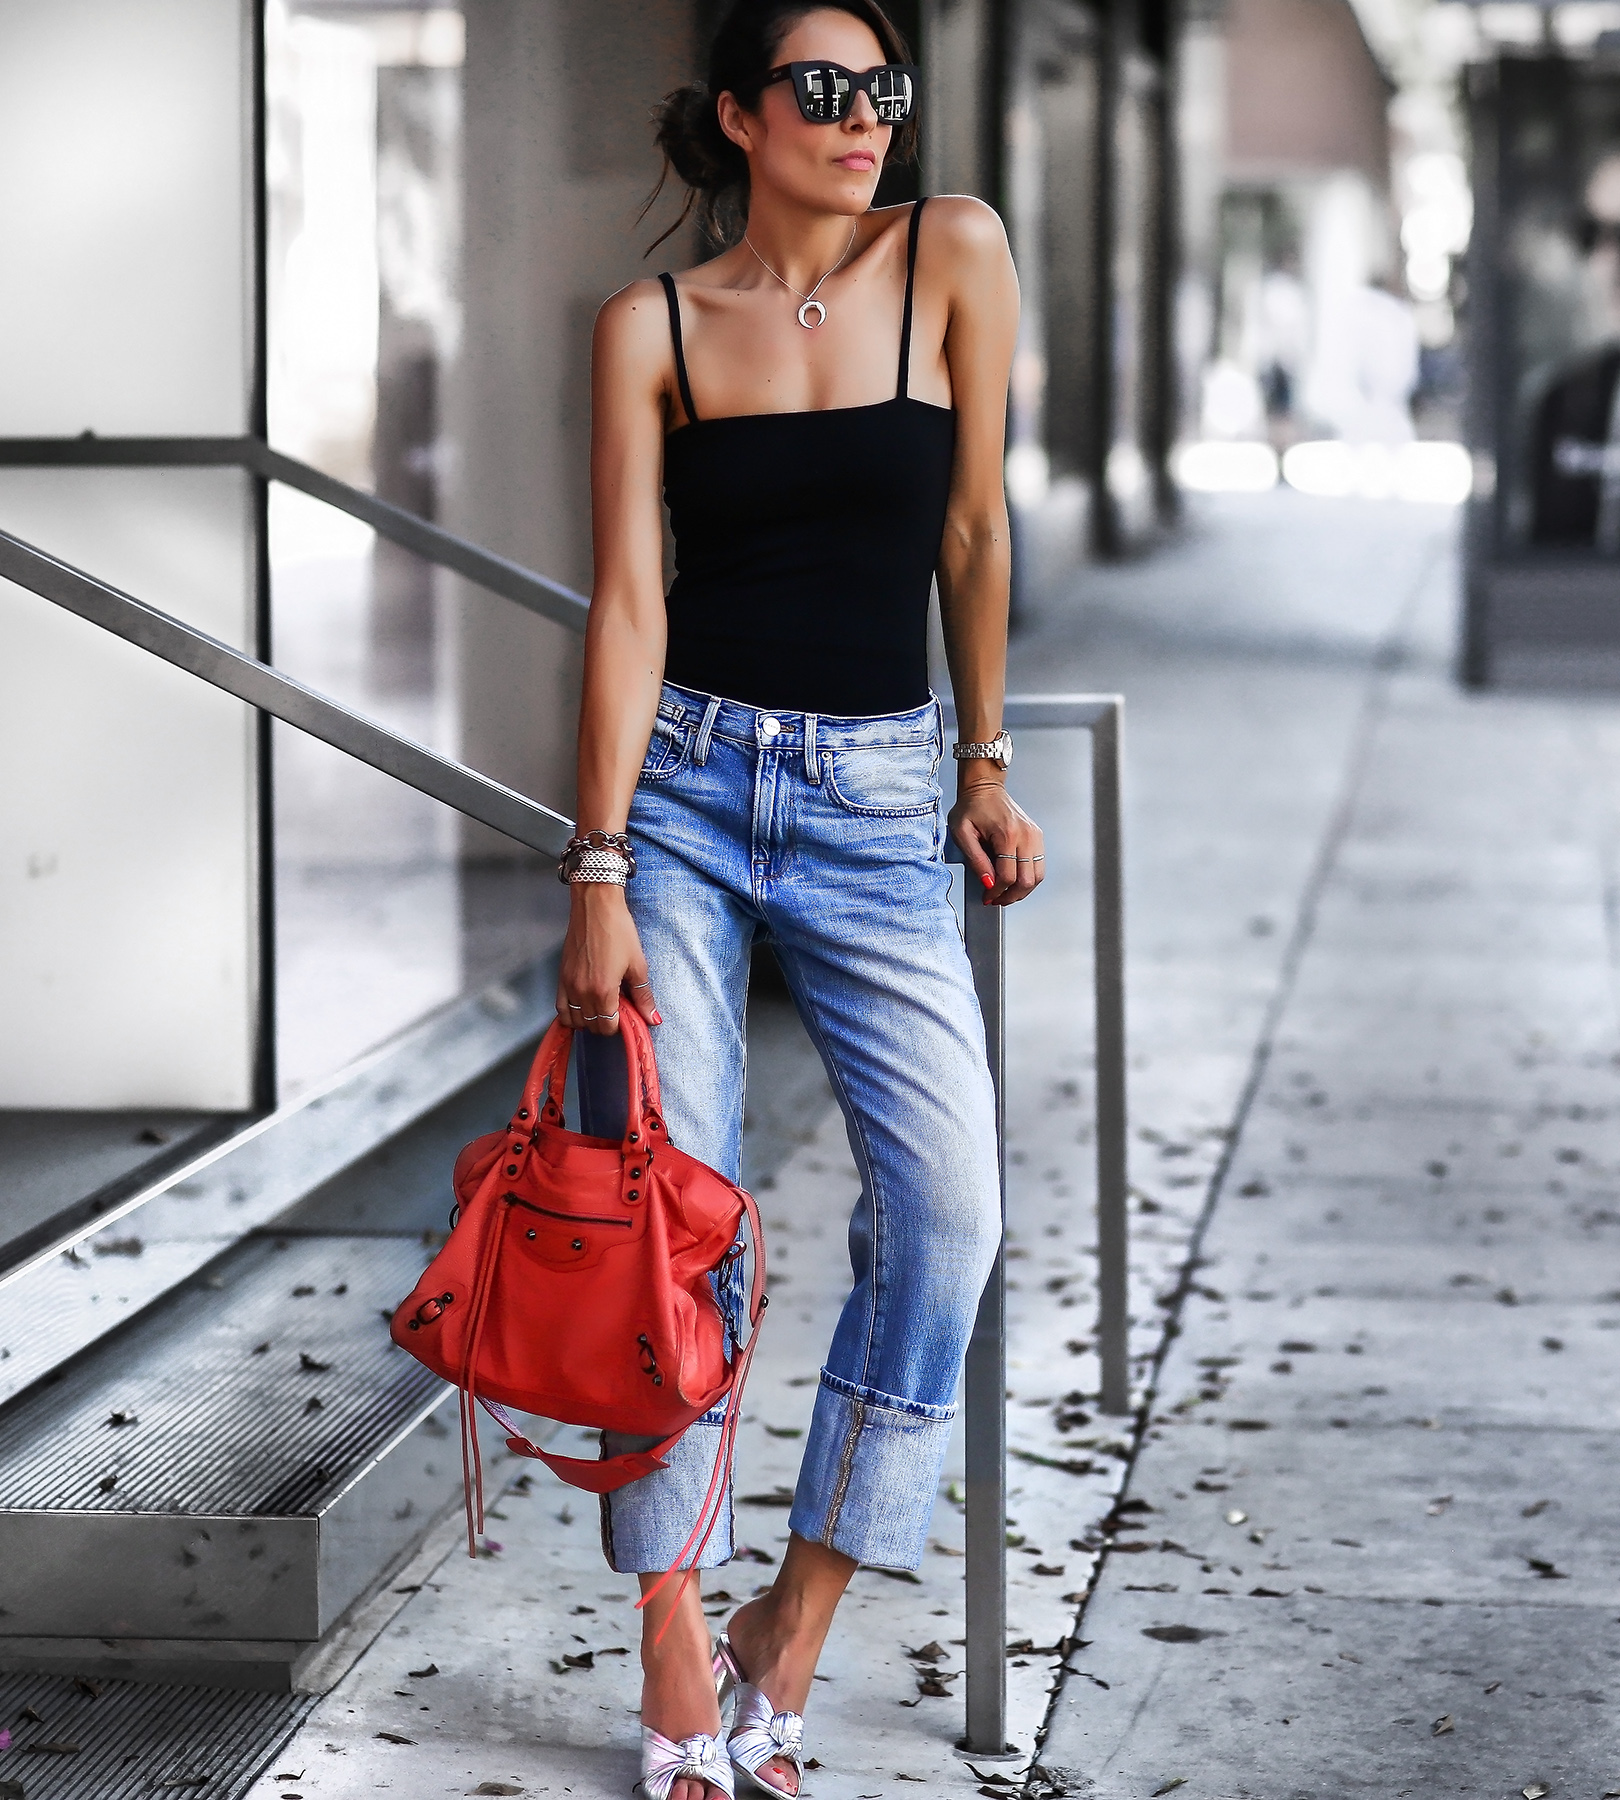 David_Lerner_FRAME_Denim_Balenciaga_Bag.jpg